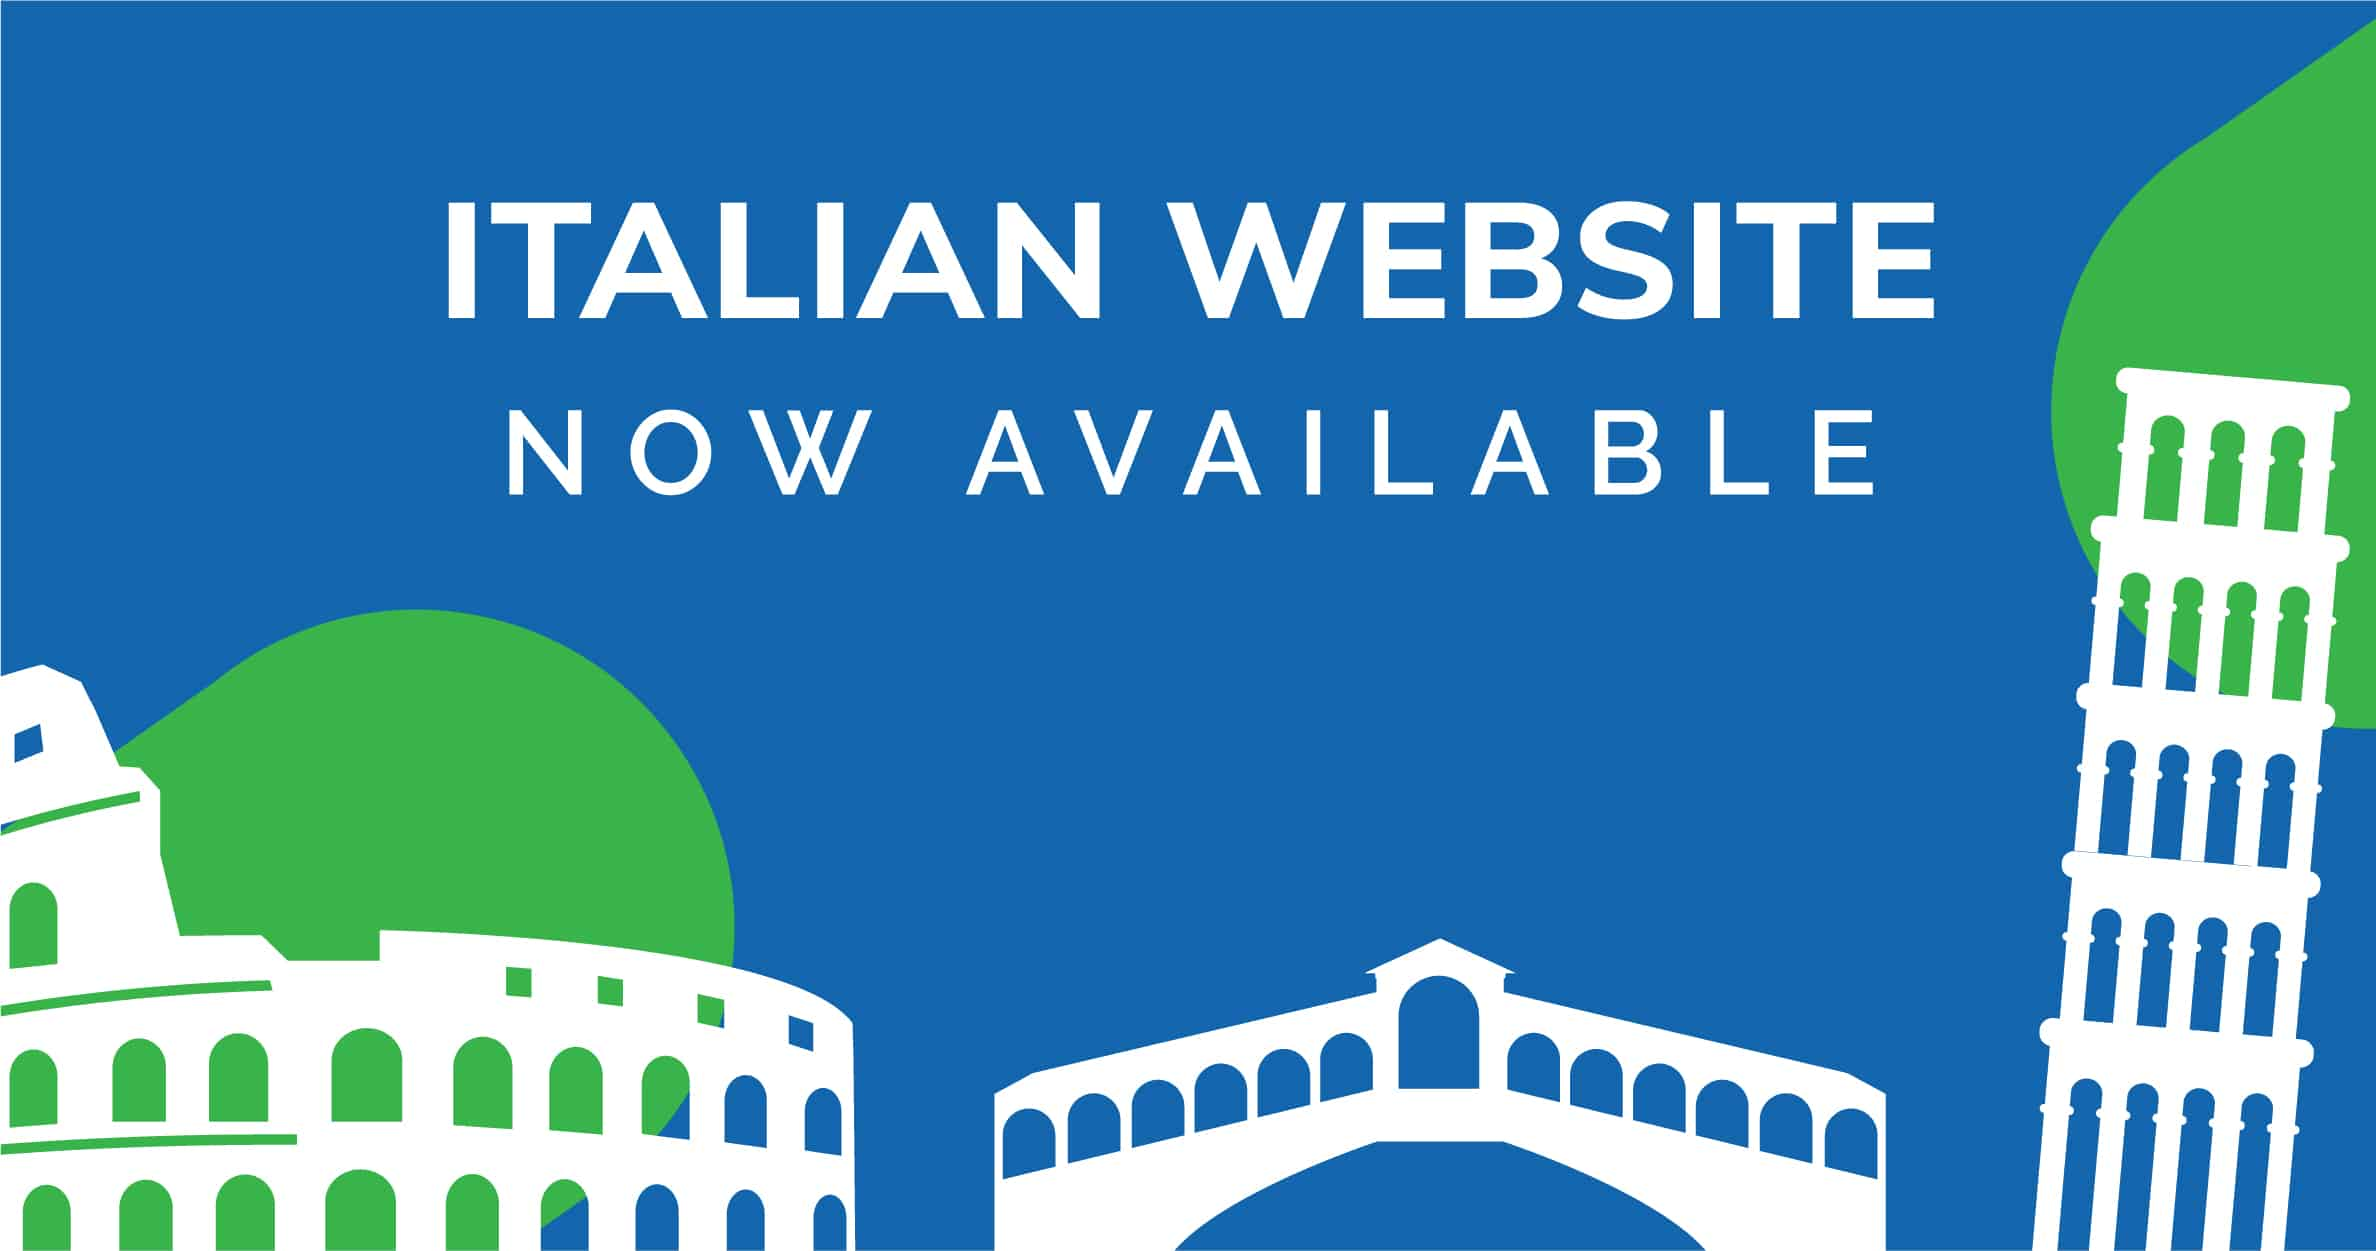 Memcon website is now available in Italian language.